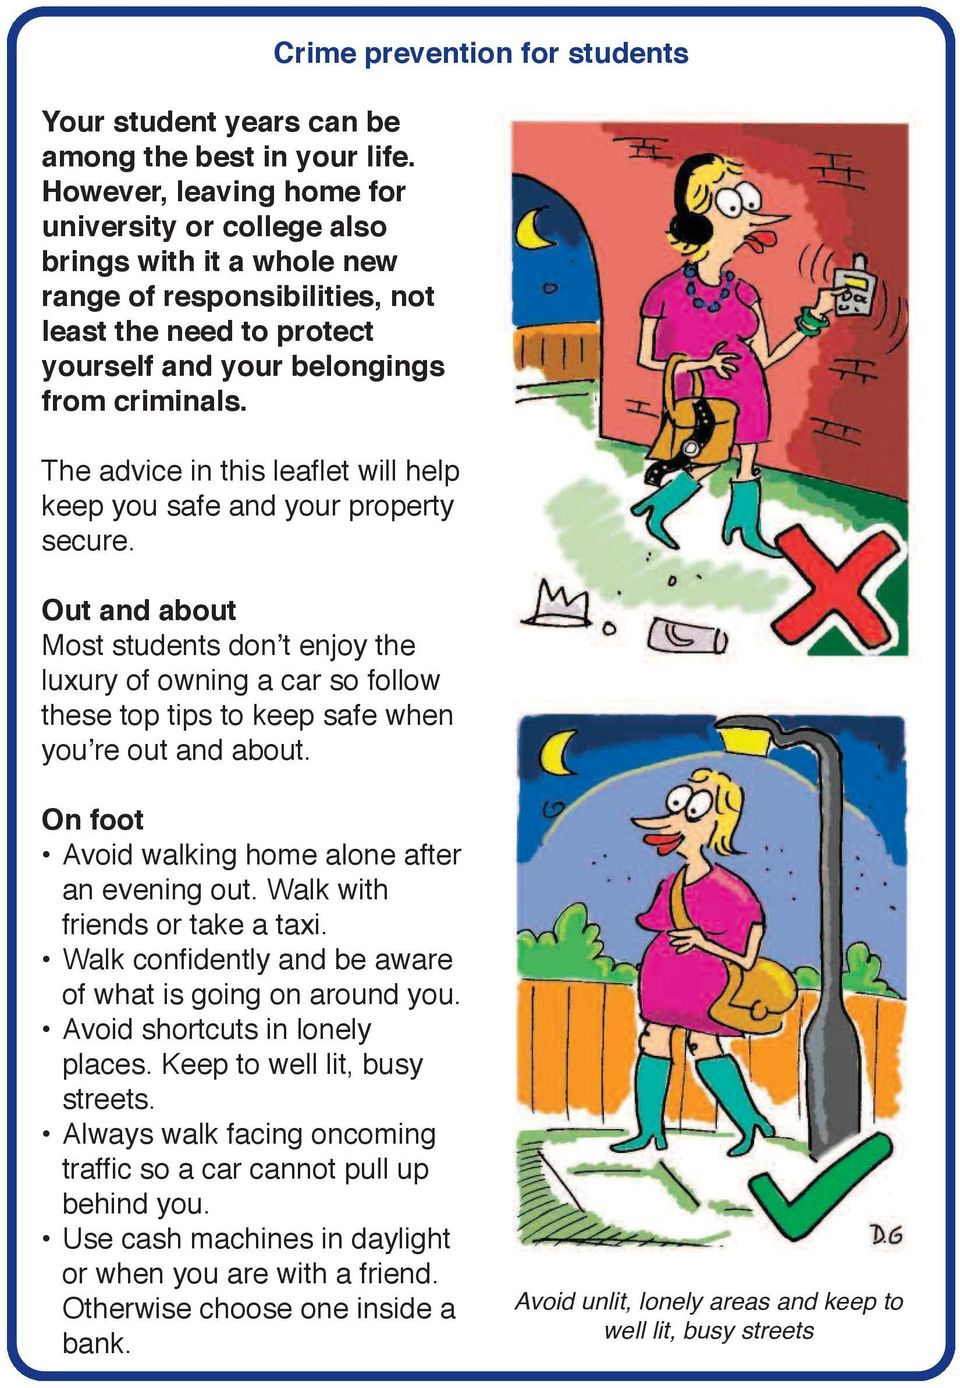 The advice in this leaflet will help keep you safe and your property secure.